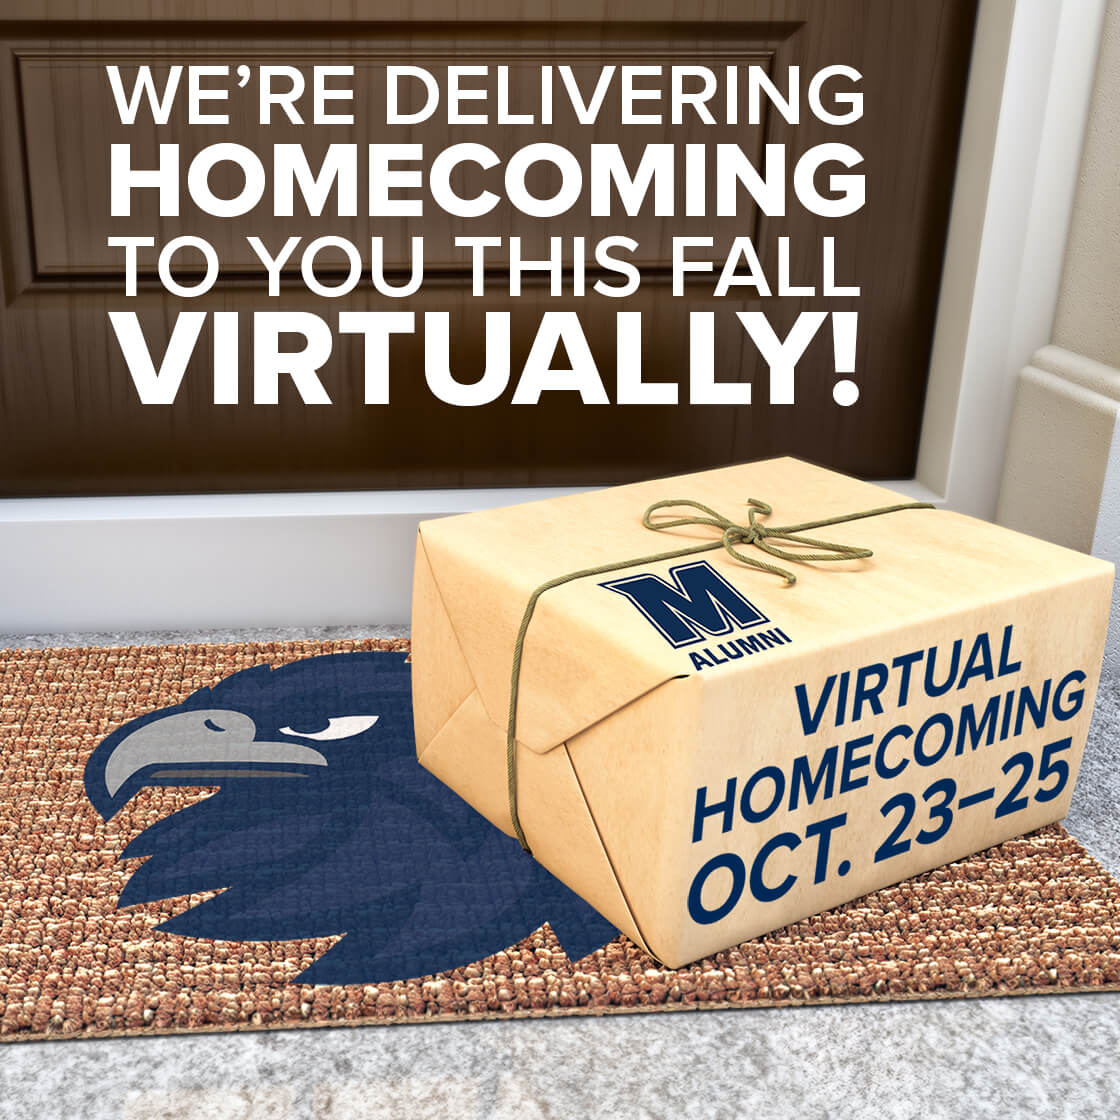 We're delivering Homecoming to you this fall virtually! Virtual Homecoming is October Twenty-Third to the Twenty-Fifth